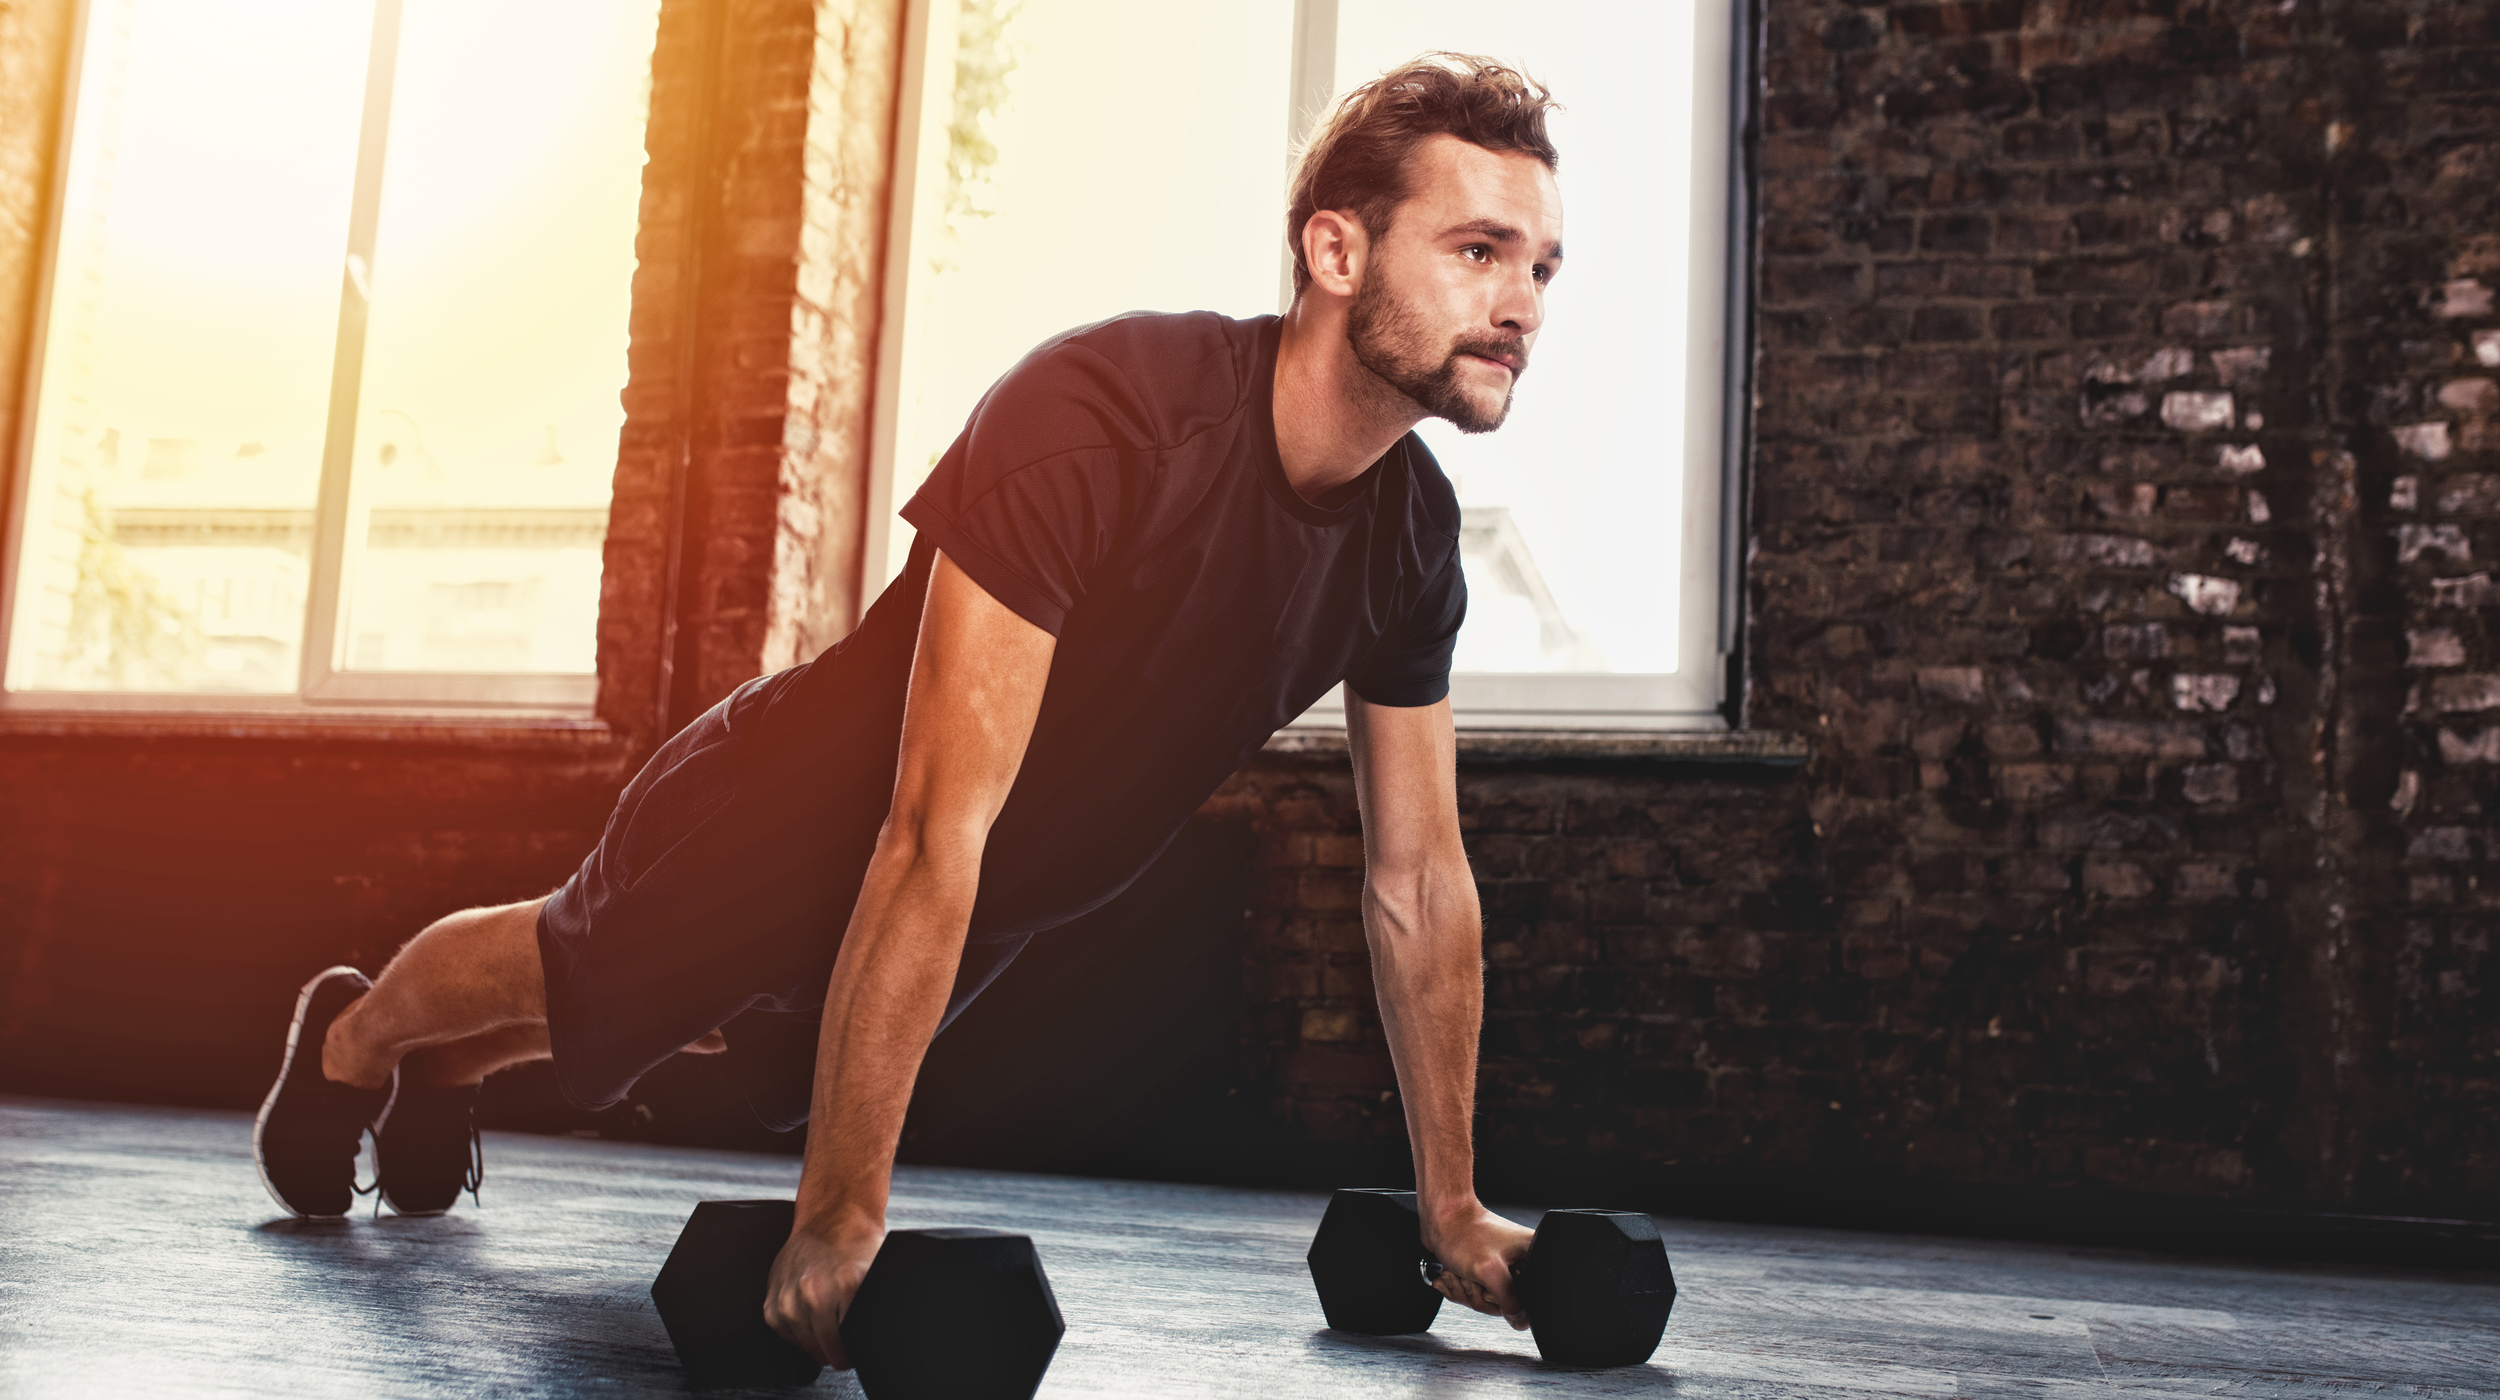 Top 4 Mistakes Skinny Guys (Hardgainers) Make Working Out